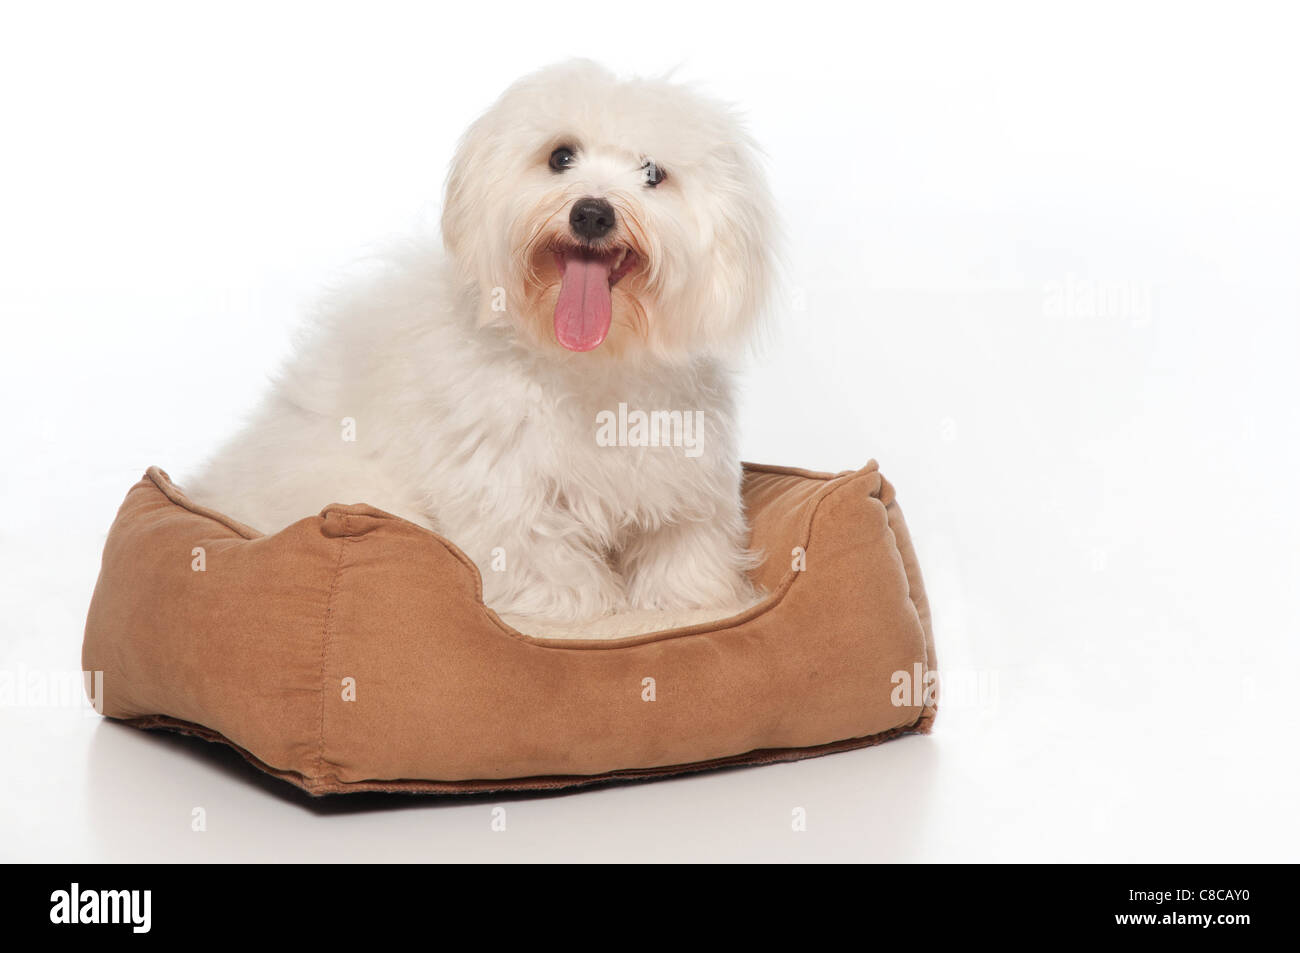 A Coton de Tulear dog, sitting in his dog bed. - Stock Image